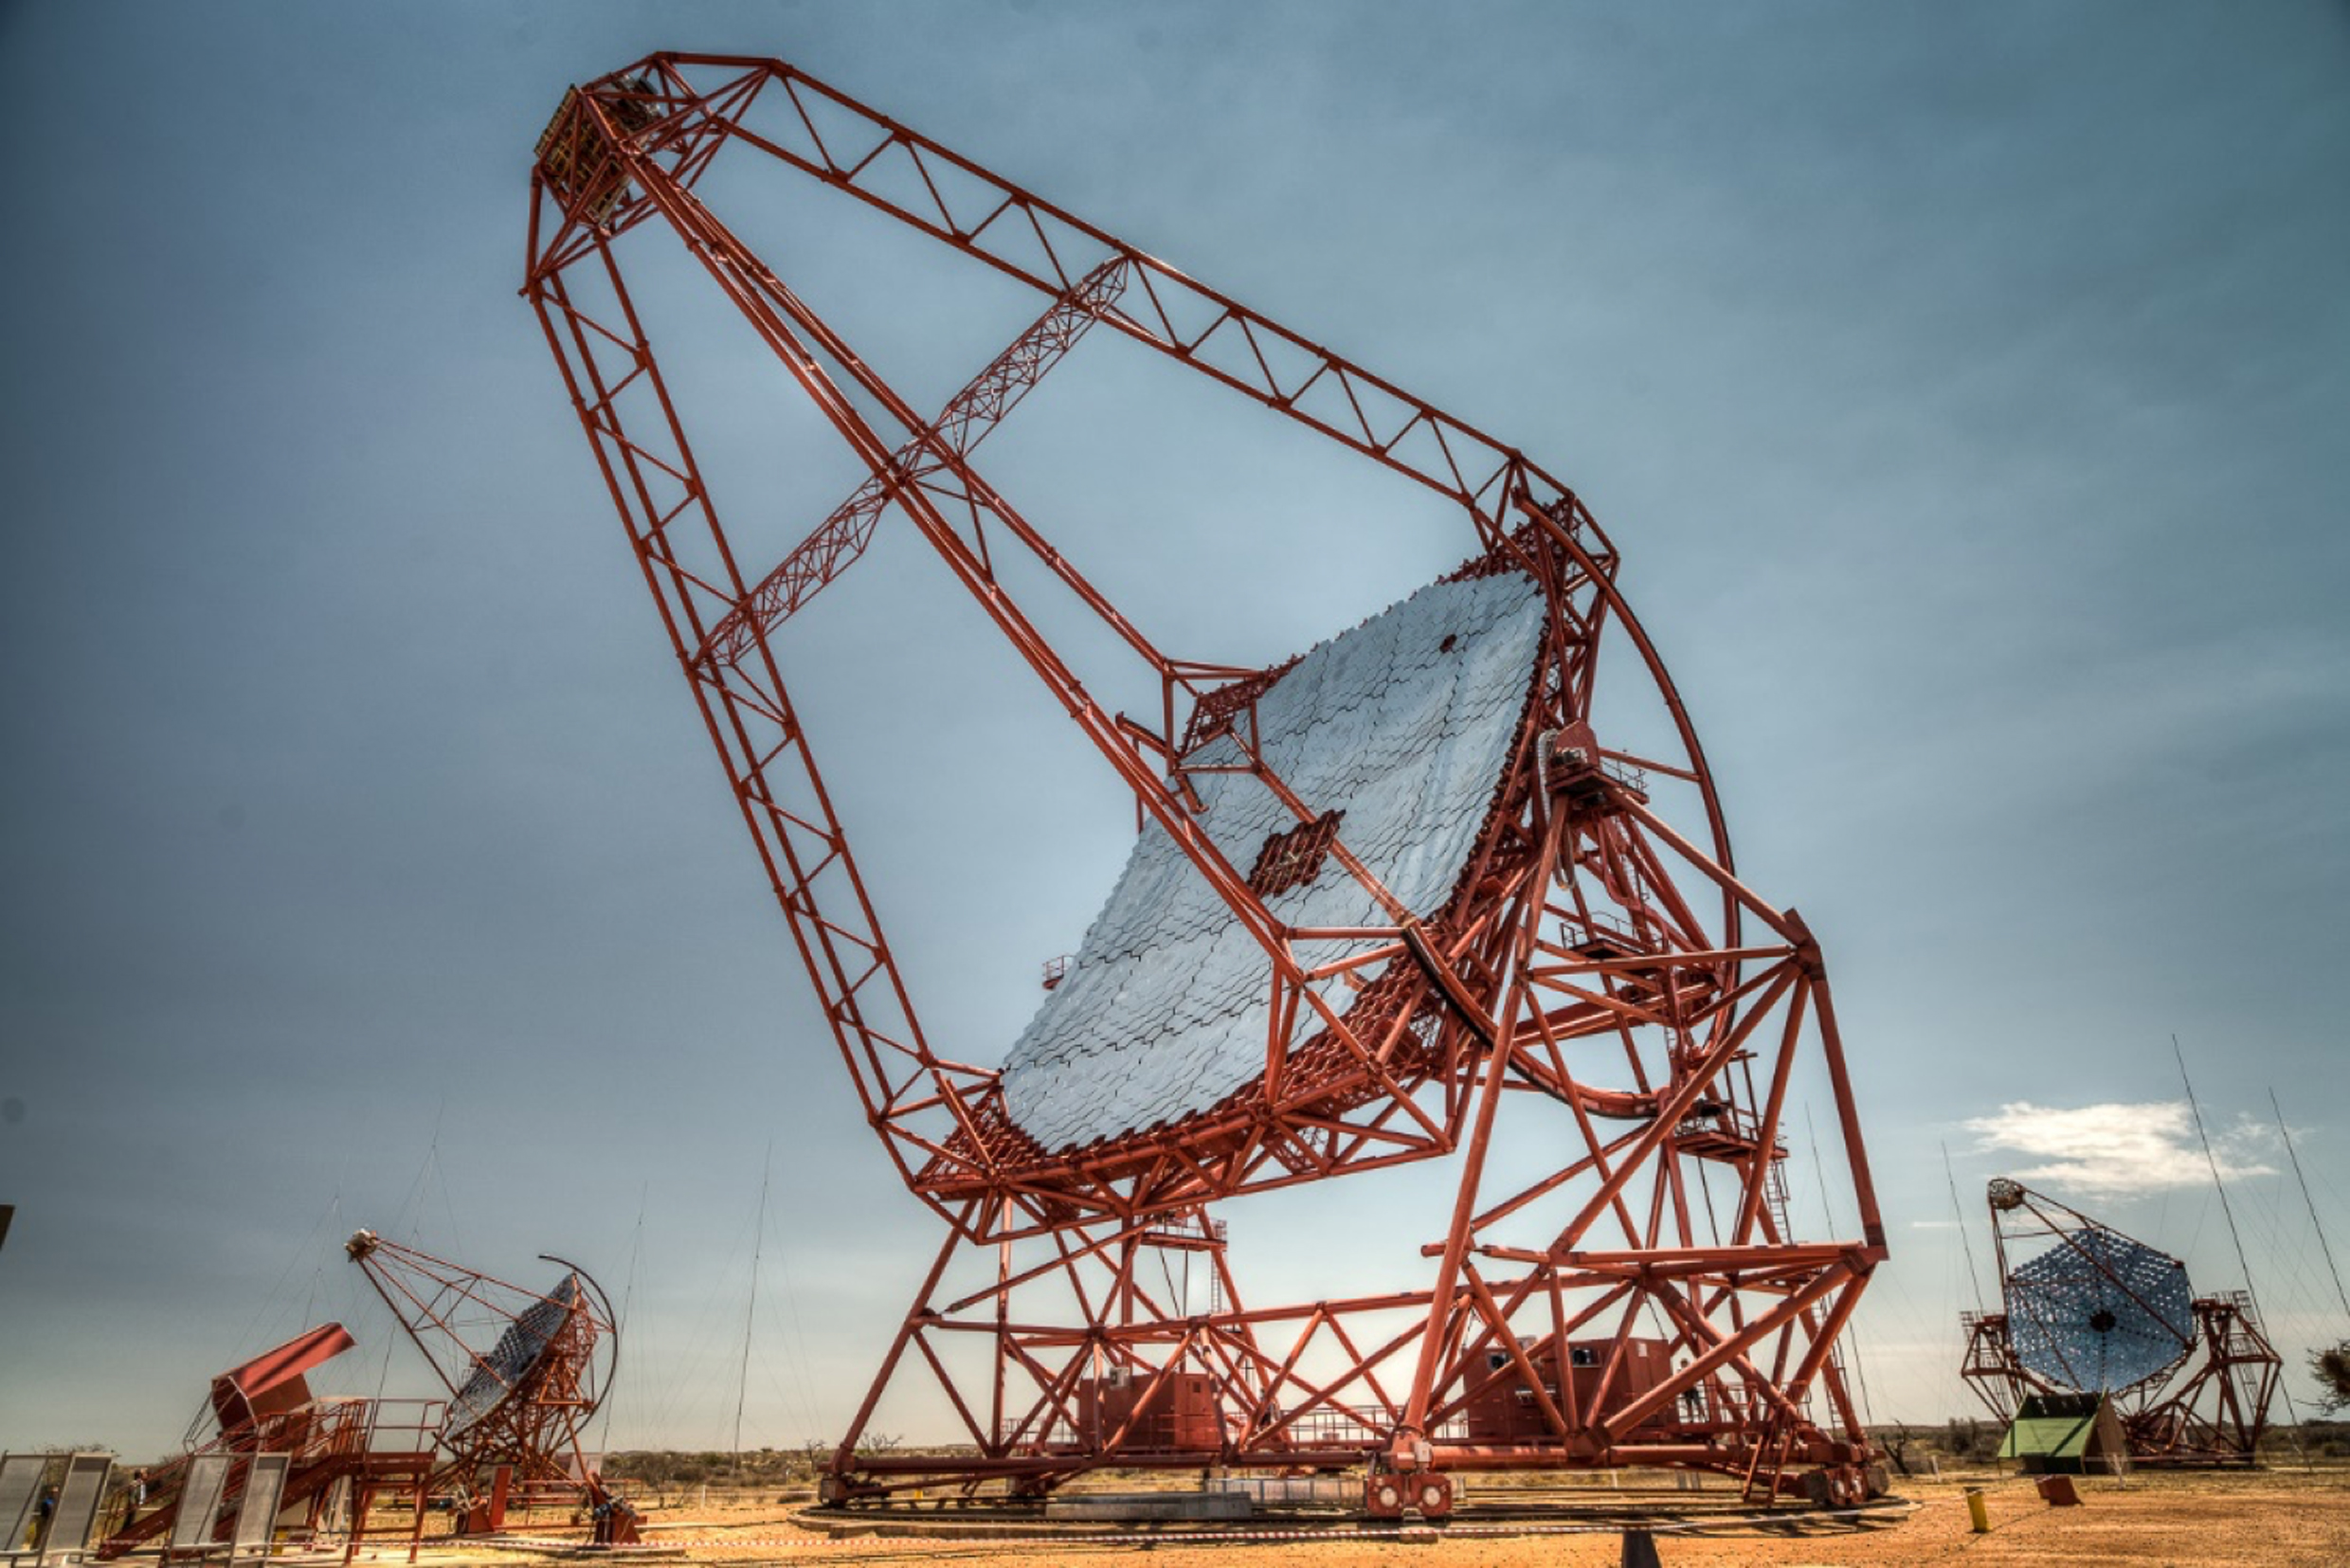 The HESS telescope in Namibia